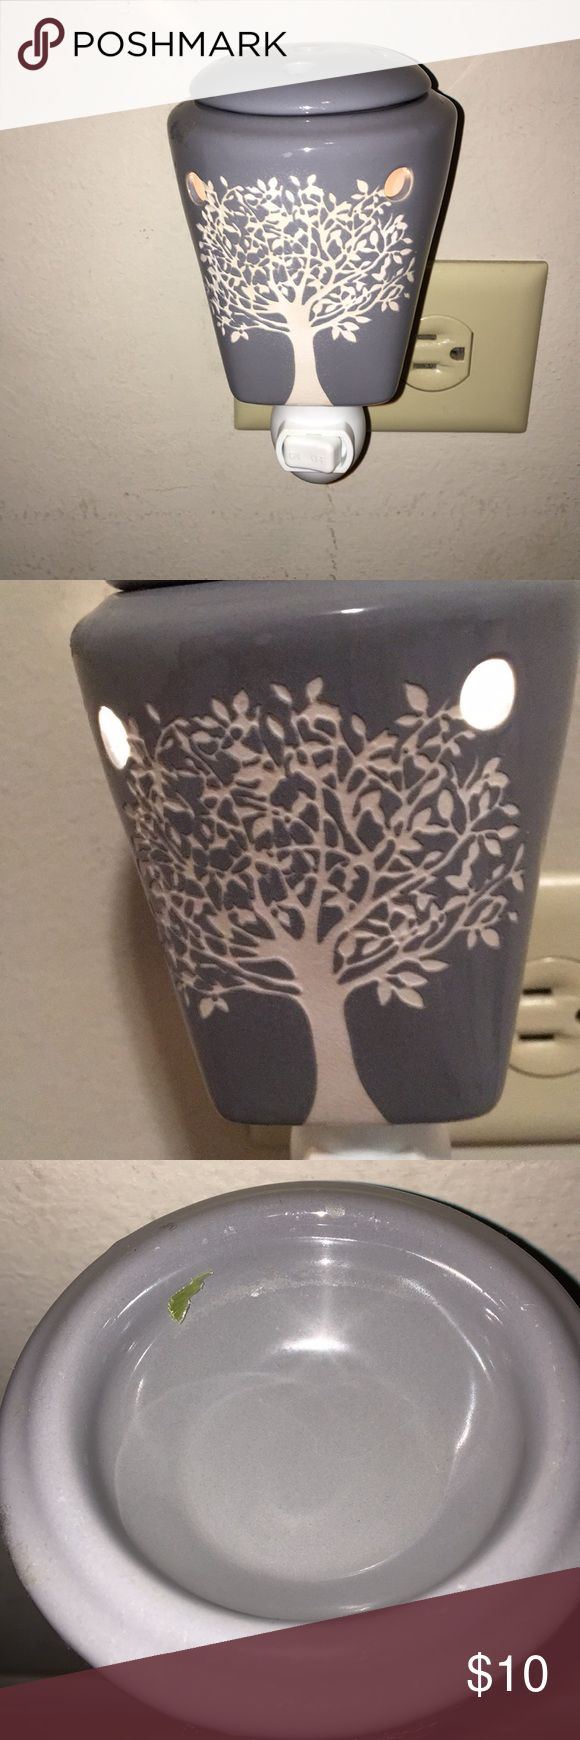 Scent warmer Plug in Other